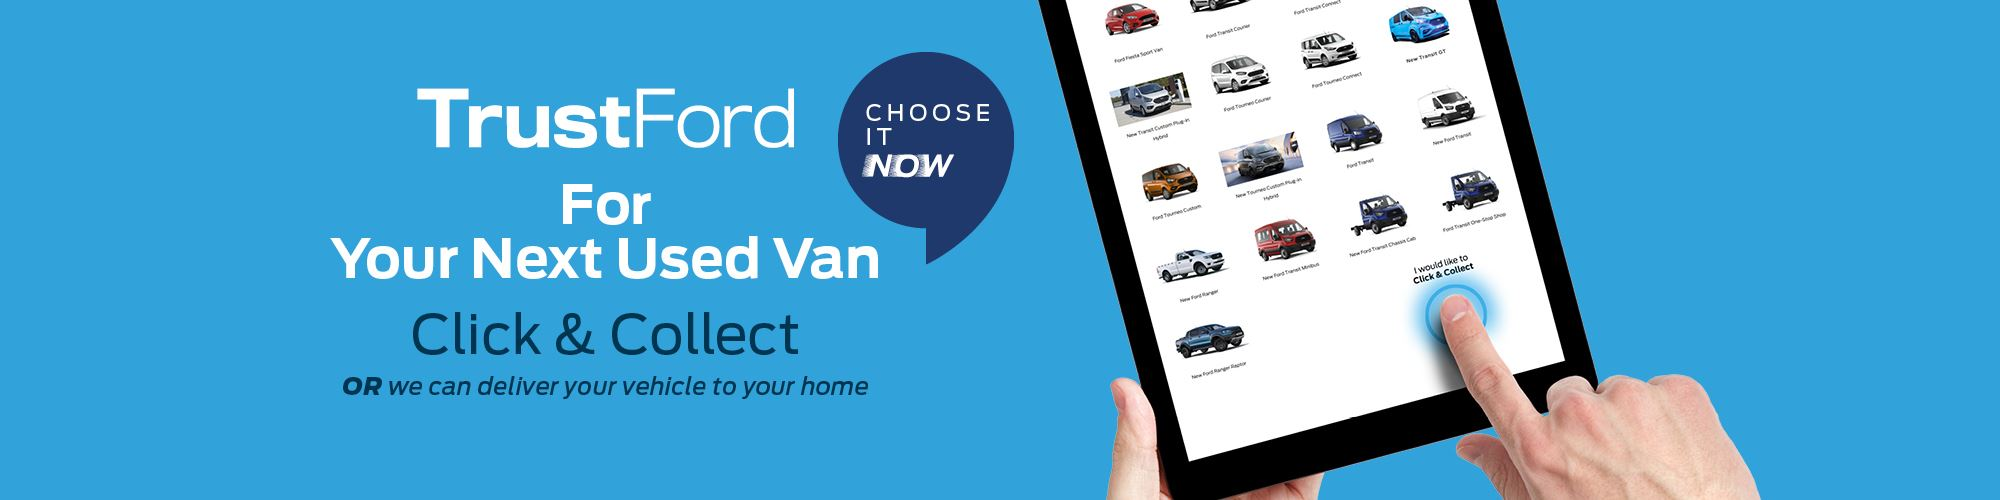 Choose Now with Click and Collect